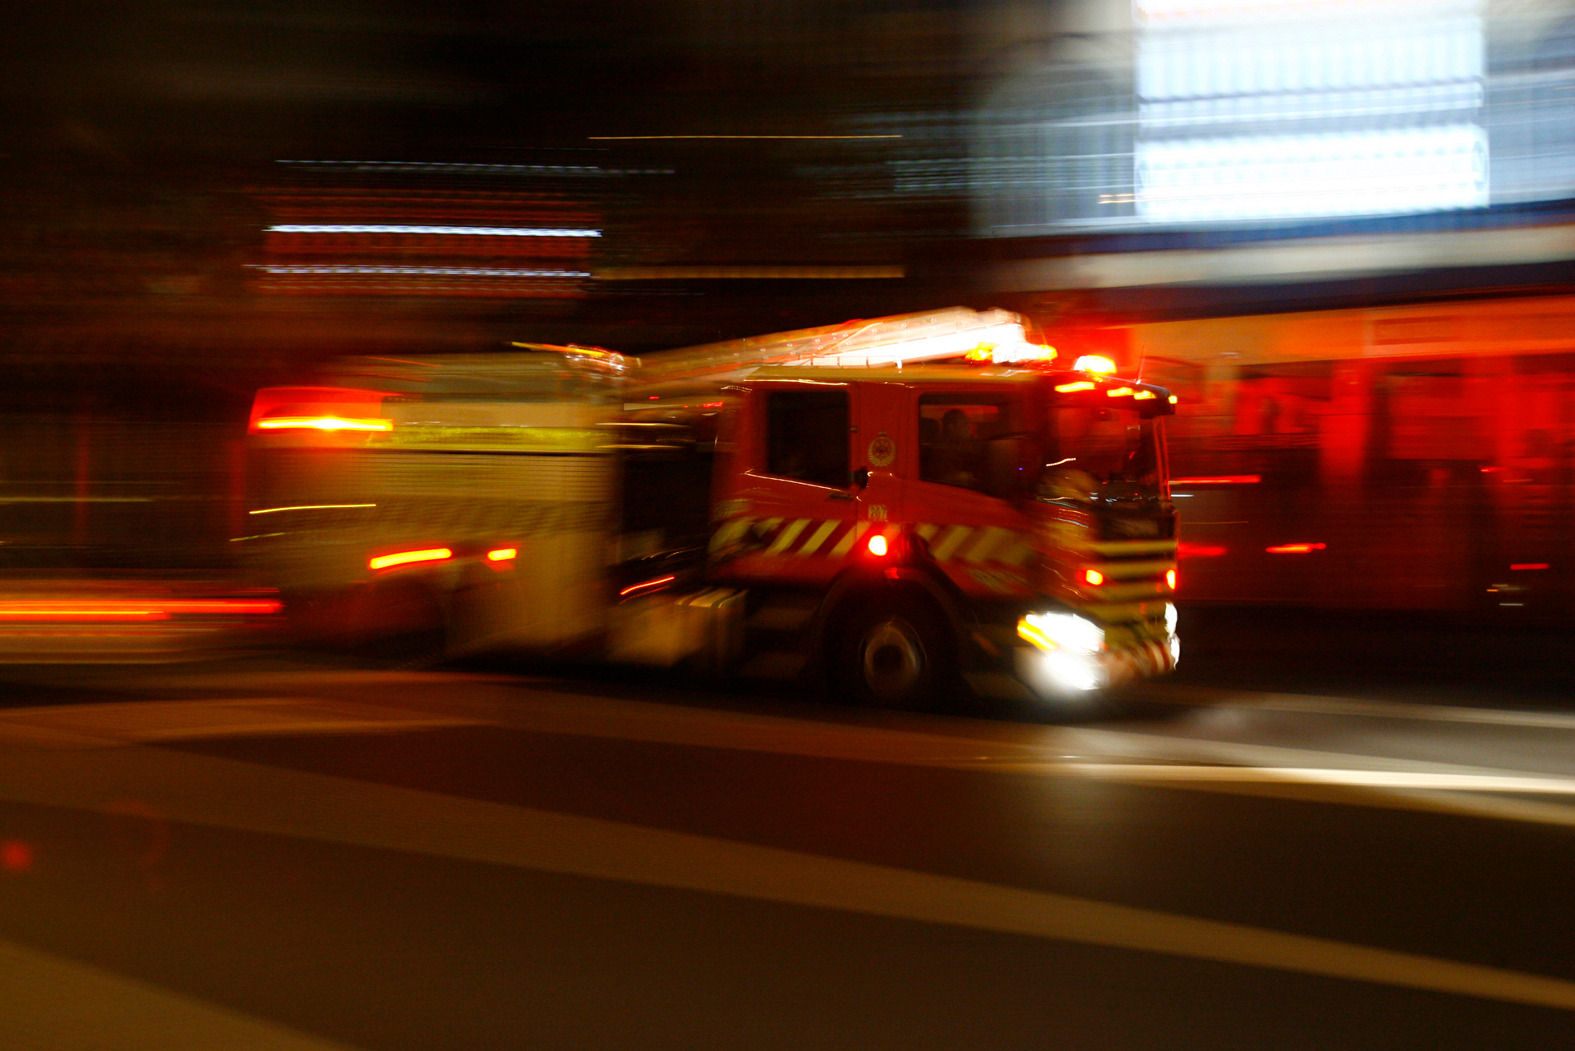 Building saved from fire in Kawerau's town centre